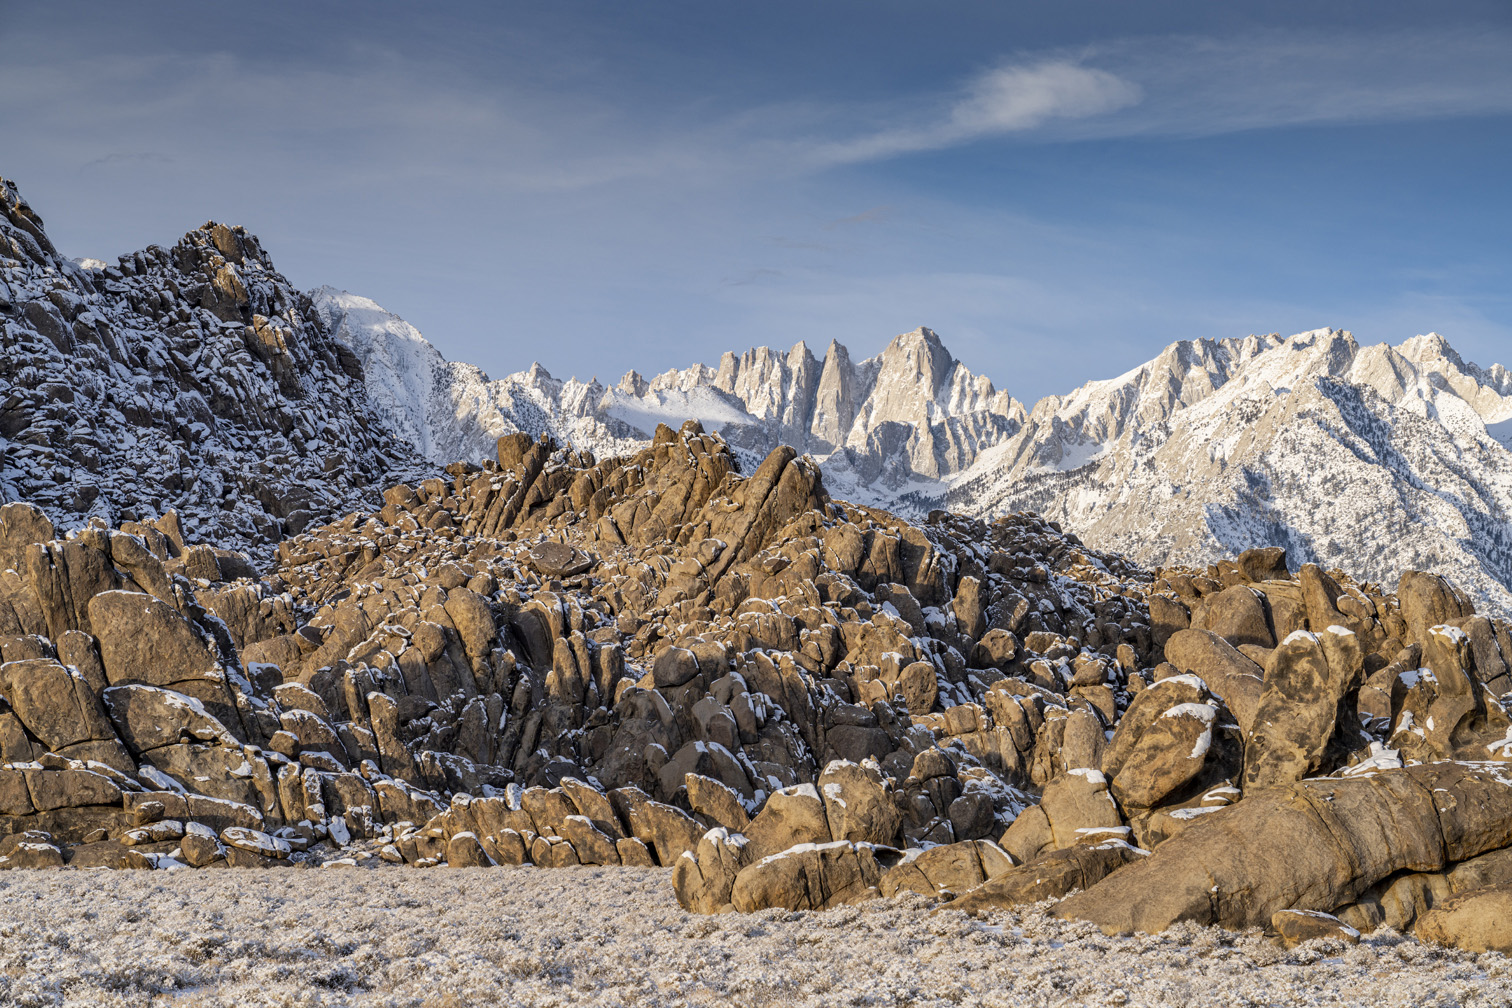 Alabama Hills/ Mt. Whitney